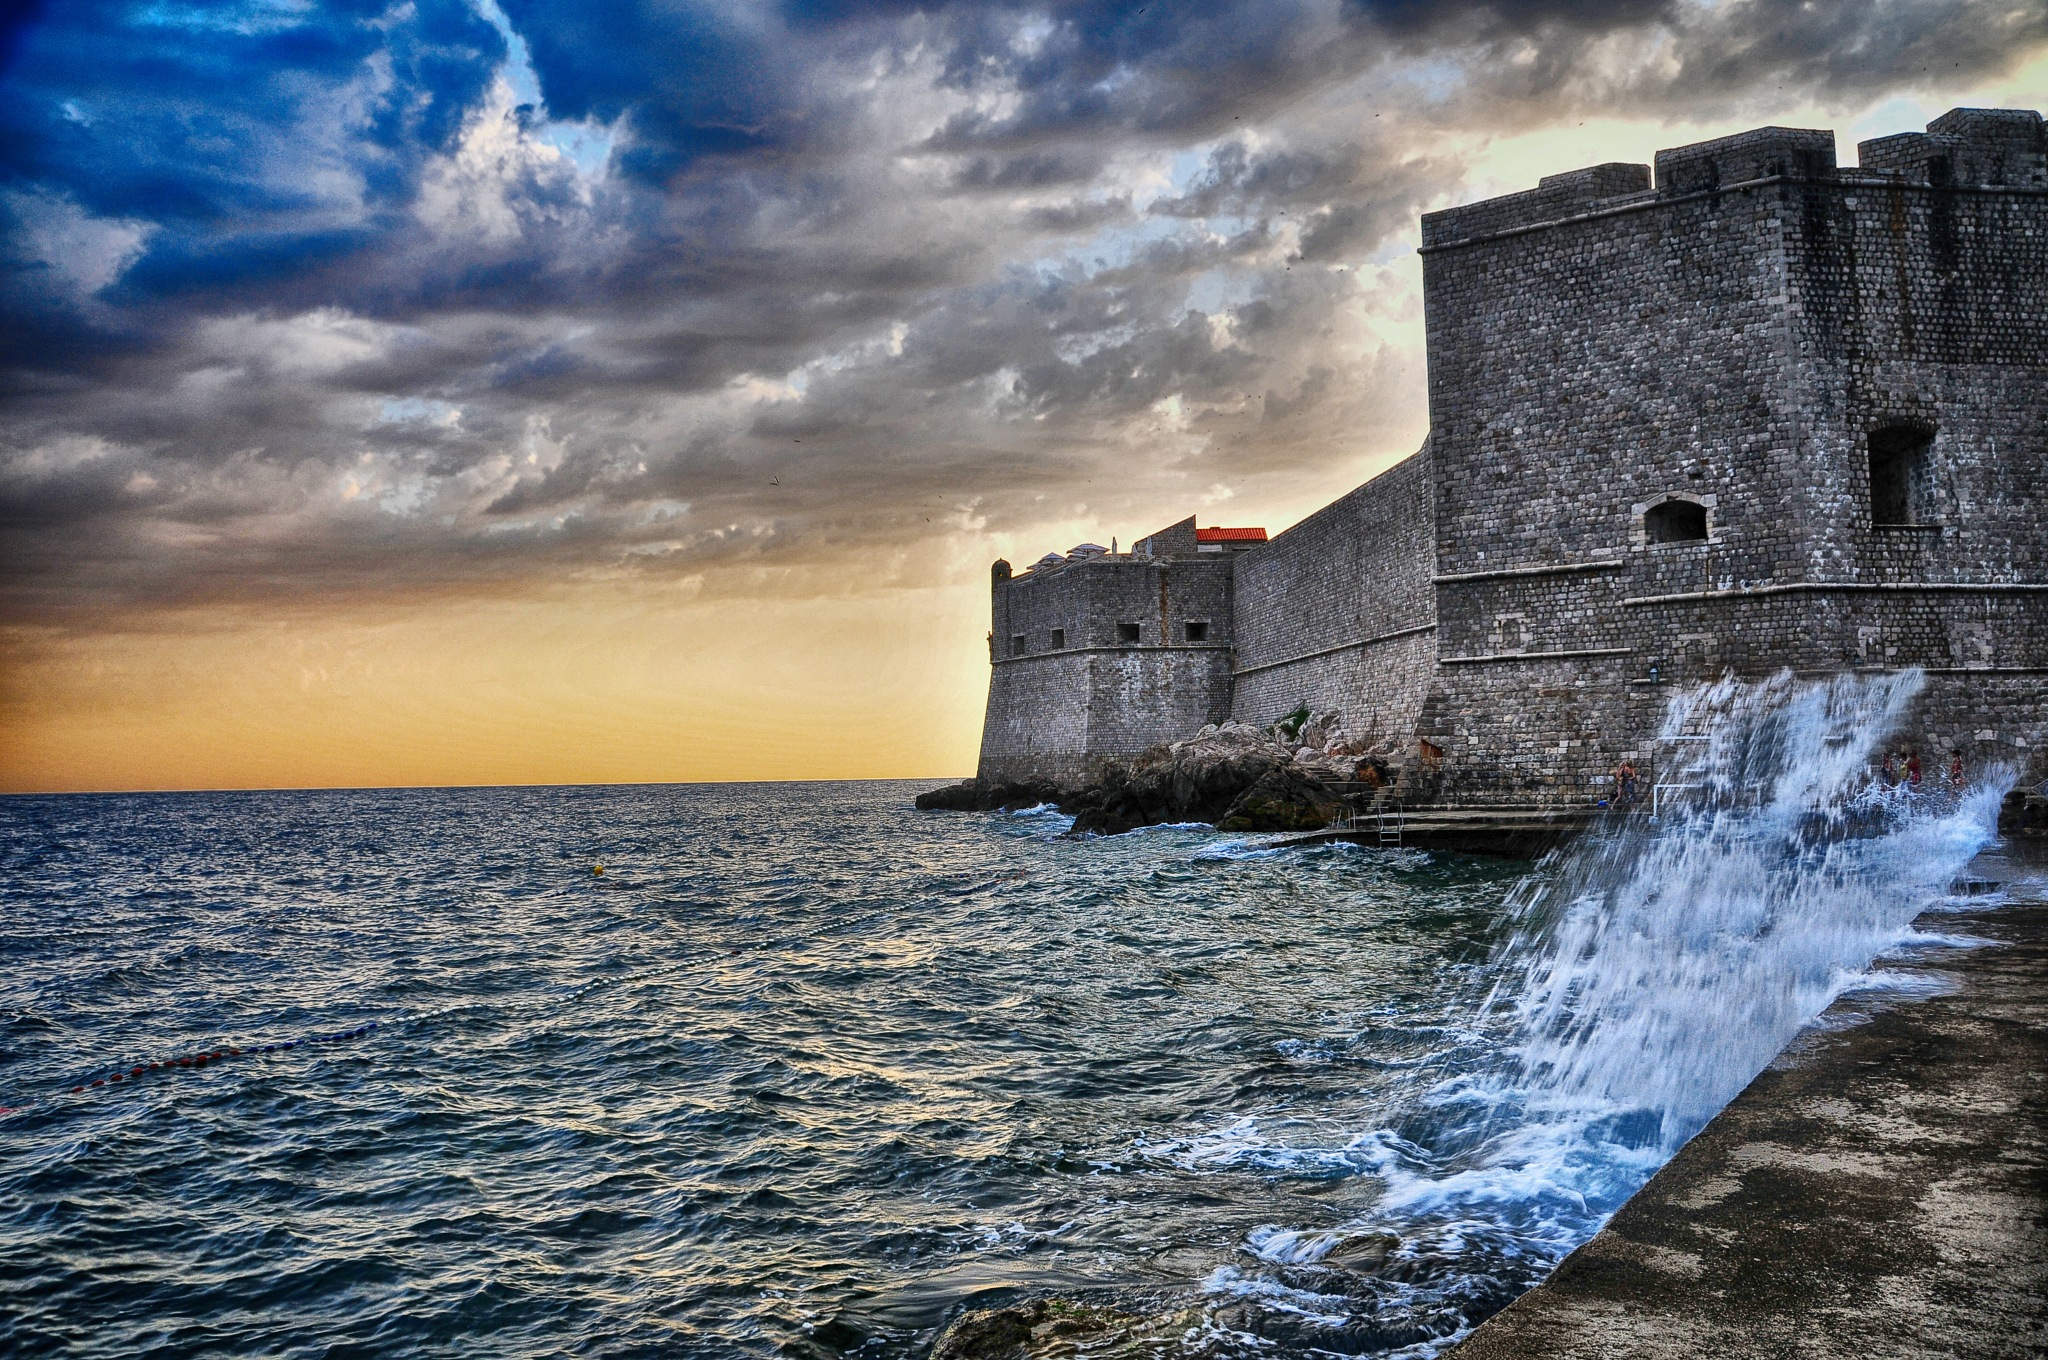 The Fortress of Dubrovnik by Manny D Suriel